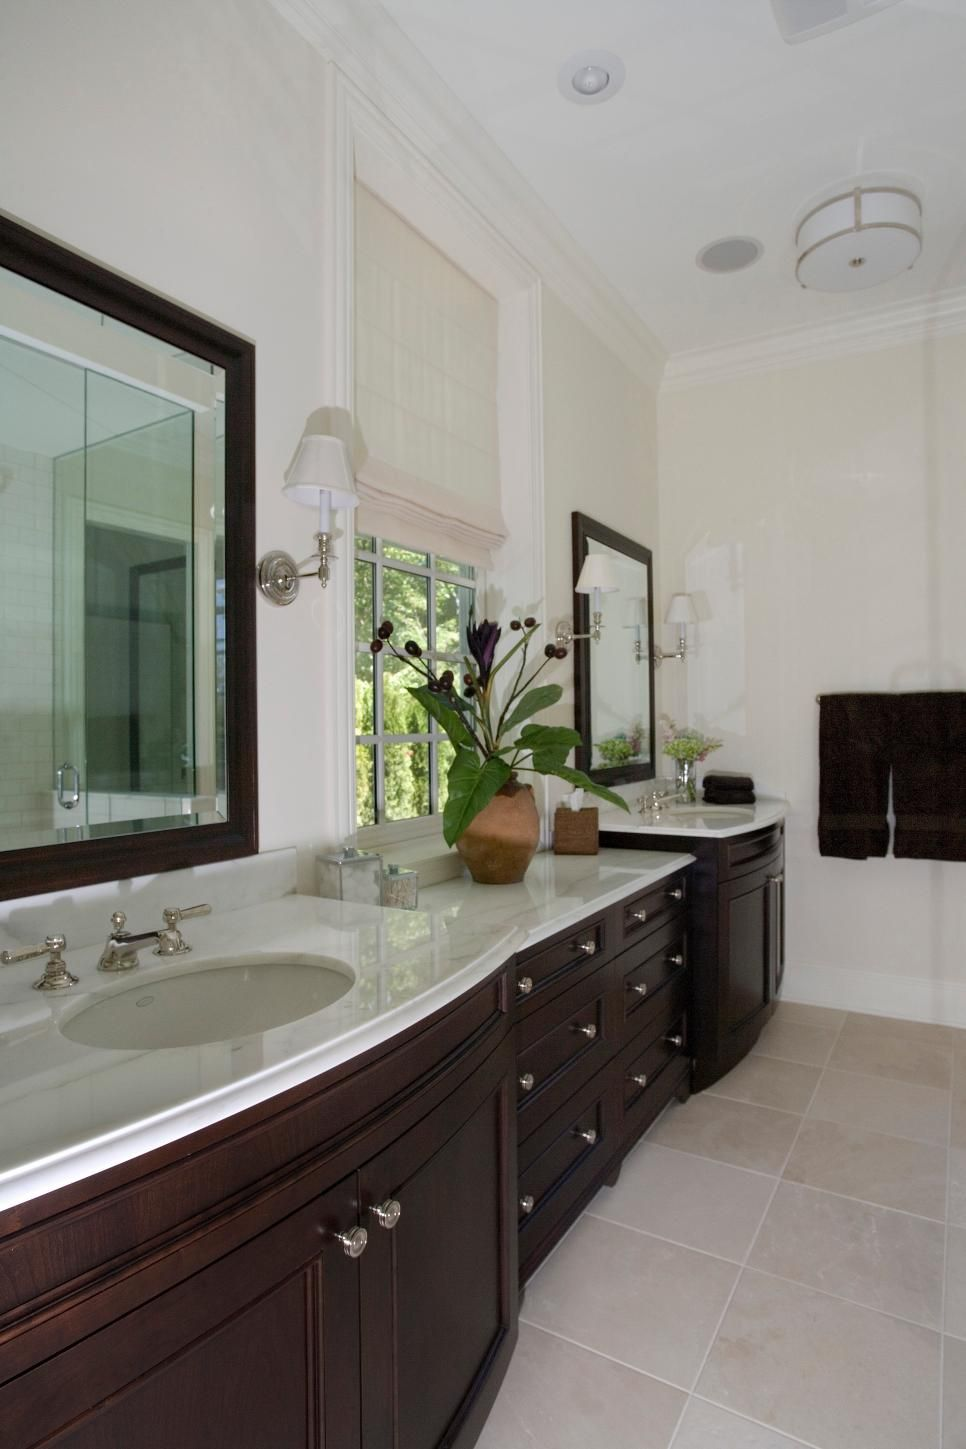 A Spacious Double Vanity With Dark Wood Cabinets And